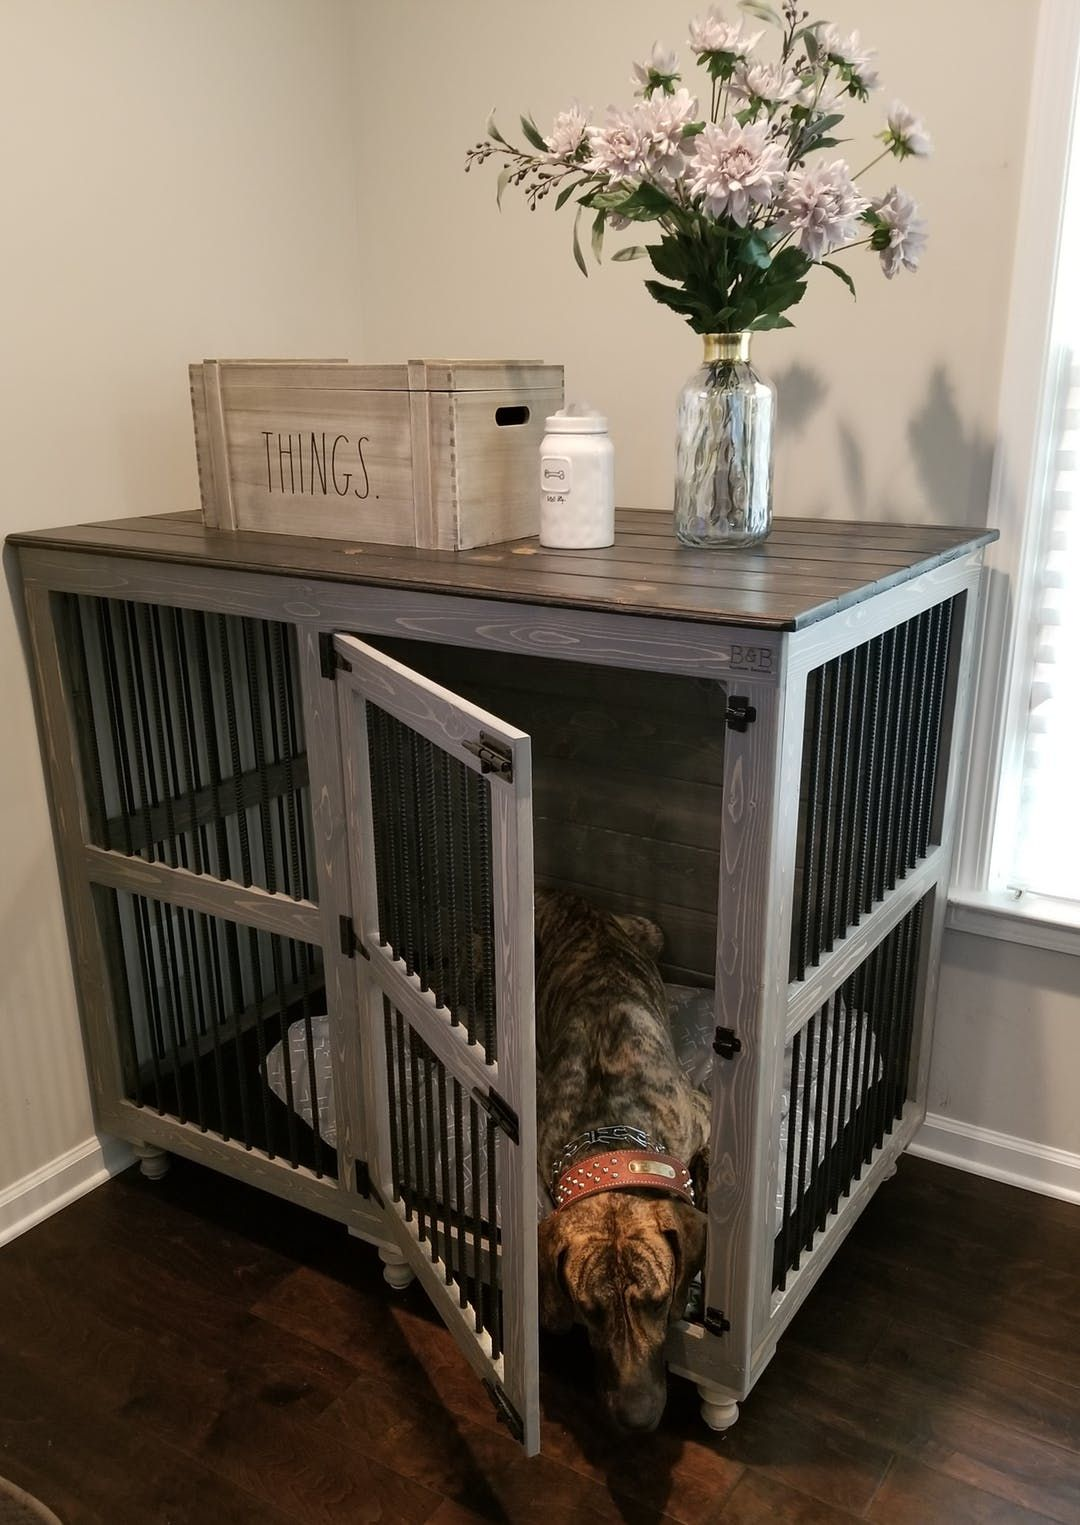 Great Dane Den Dog Crate Furniture Diy Dog Kennel Crate Furniture